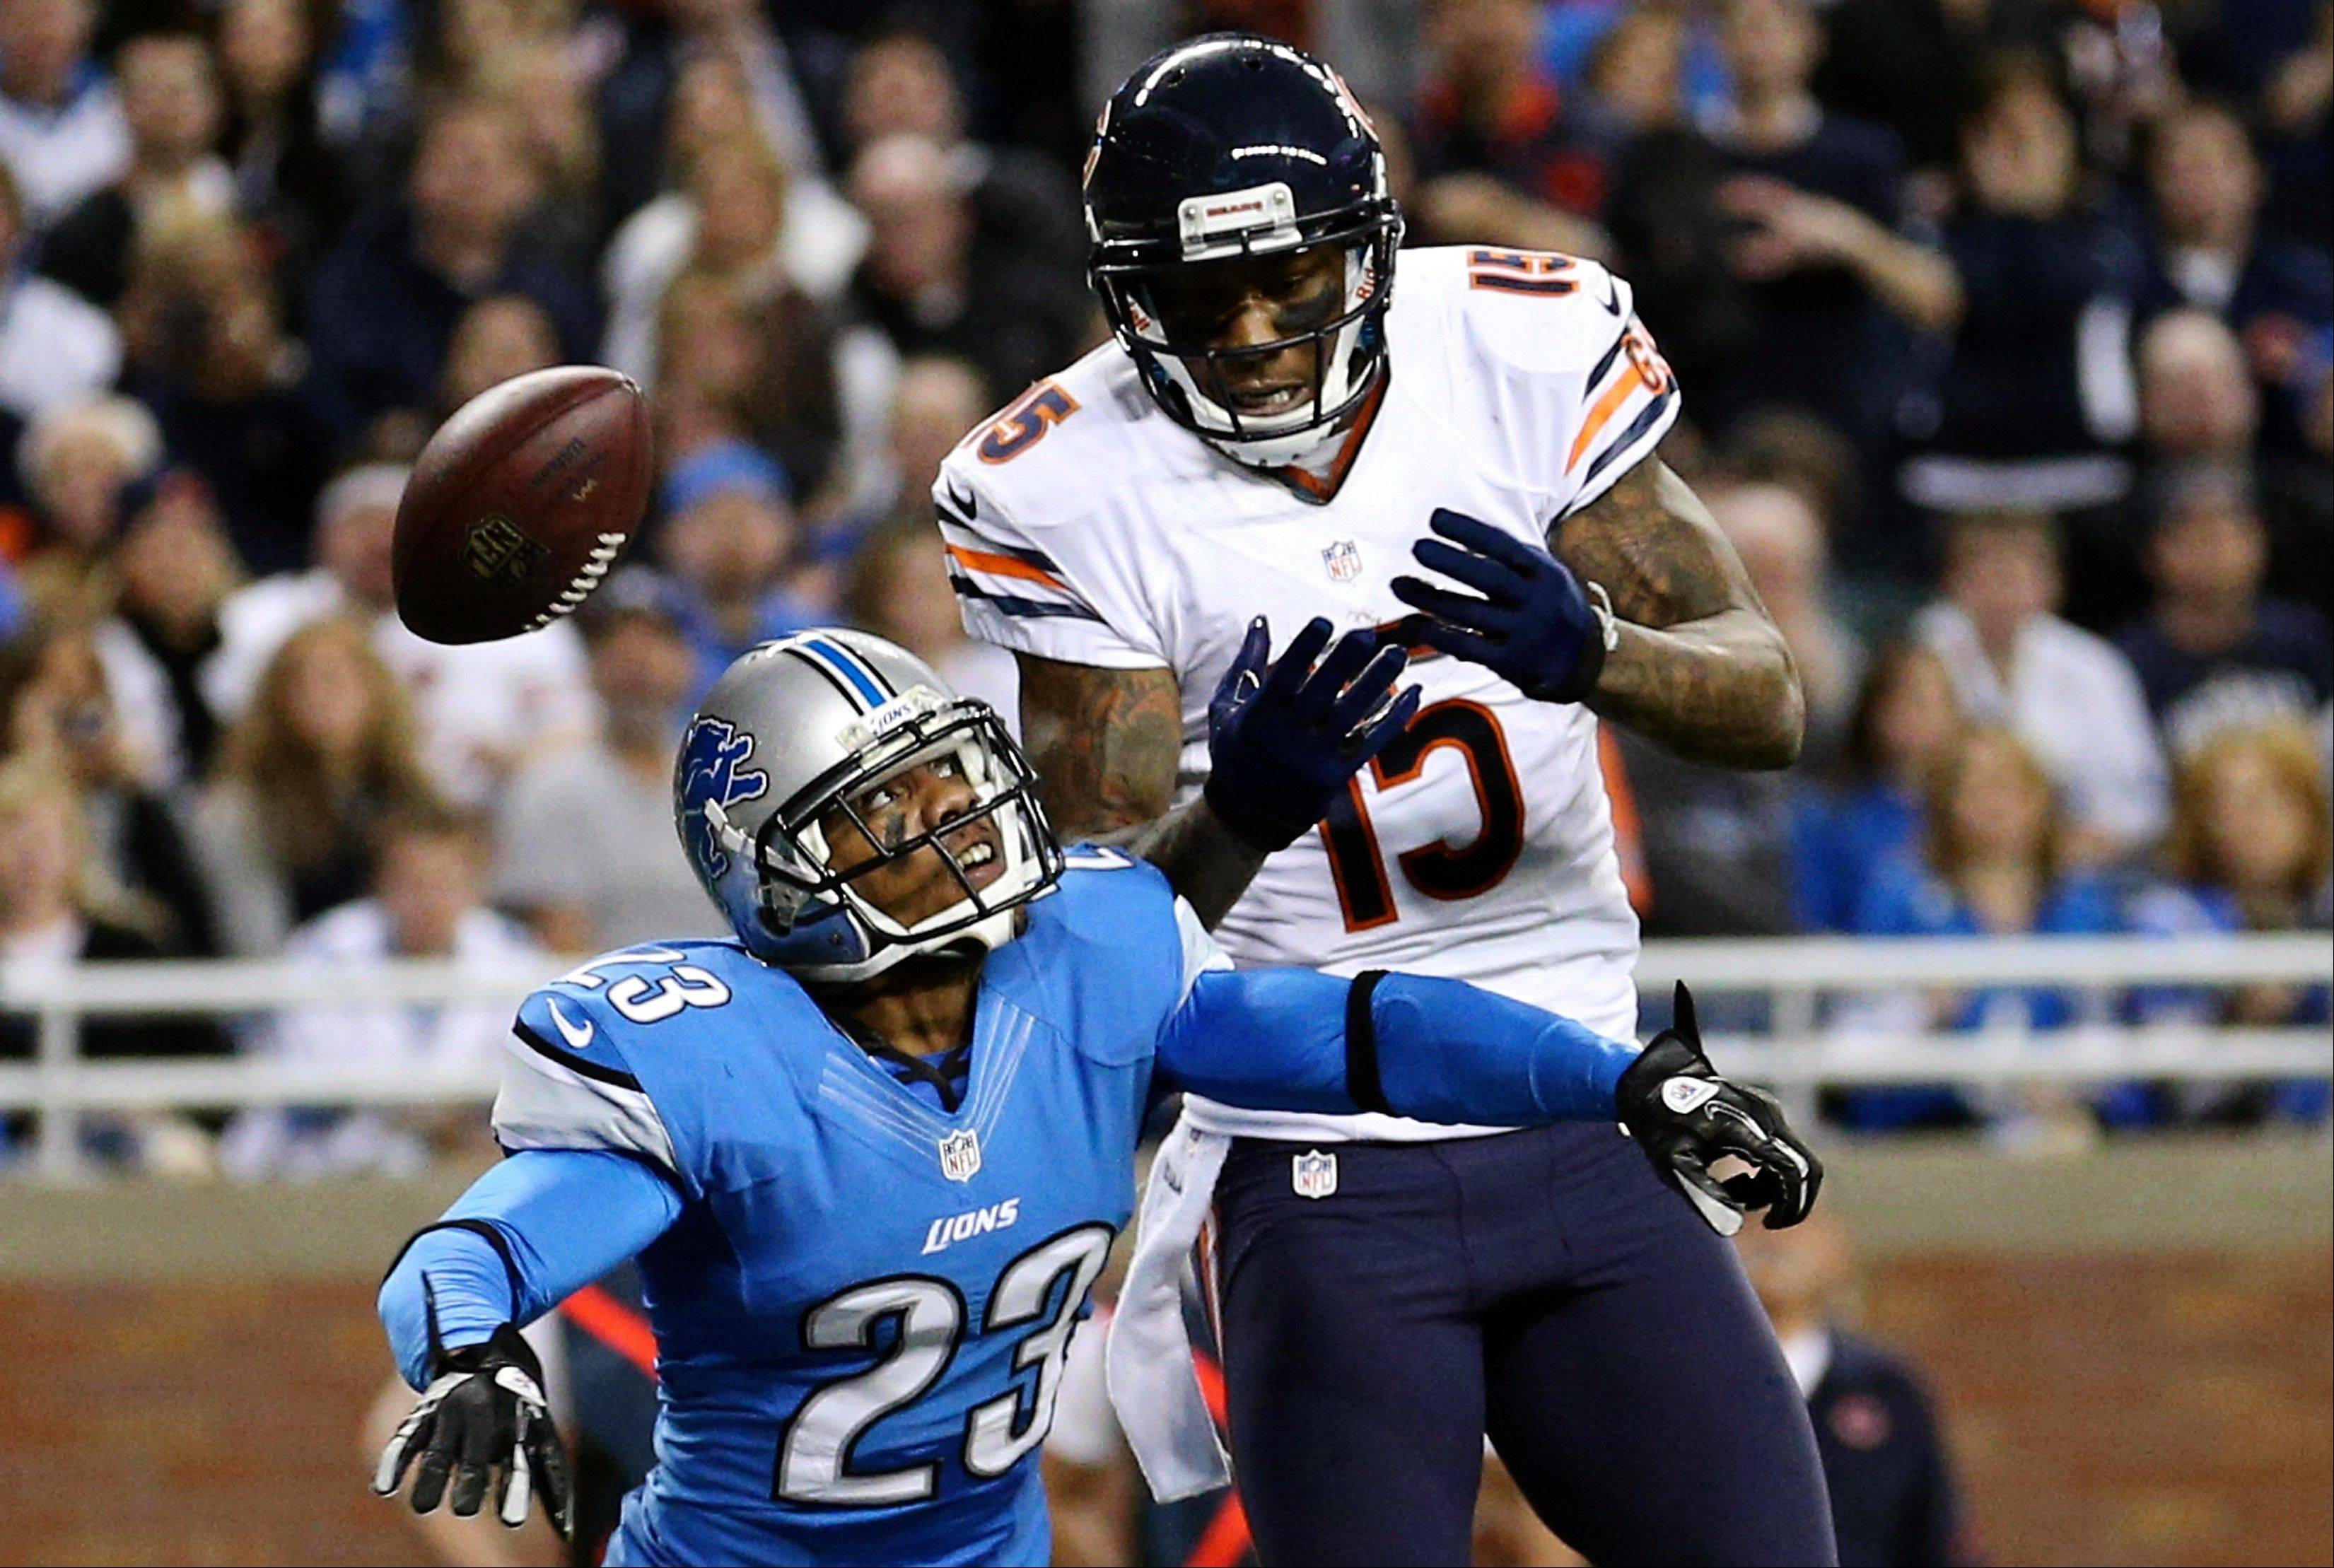 Detroit Lions cornerback Chris Houston (23) breaks up a pass intended for Chicago Bears wide receiver Brandon Marshall (15) during the fourth quarter.